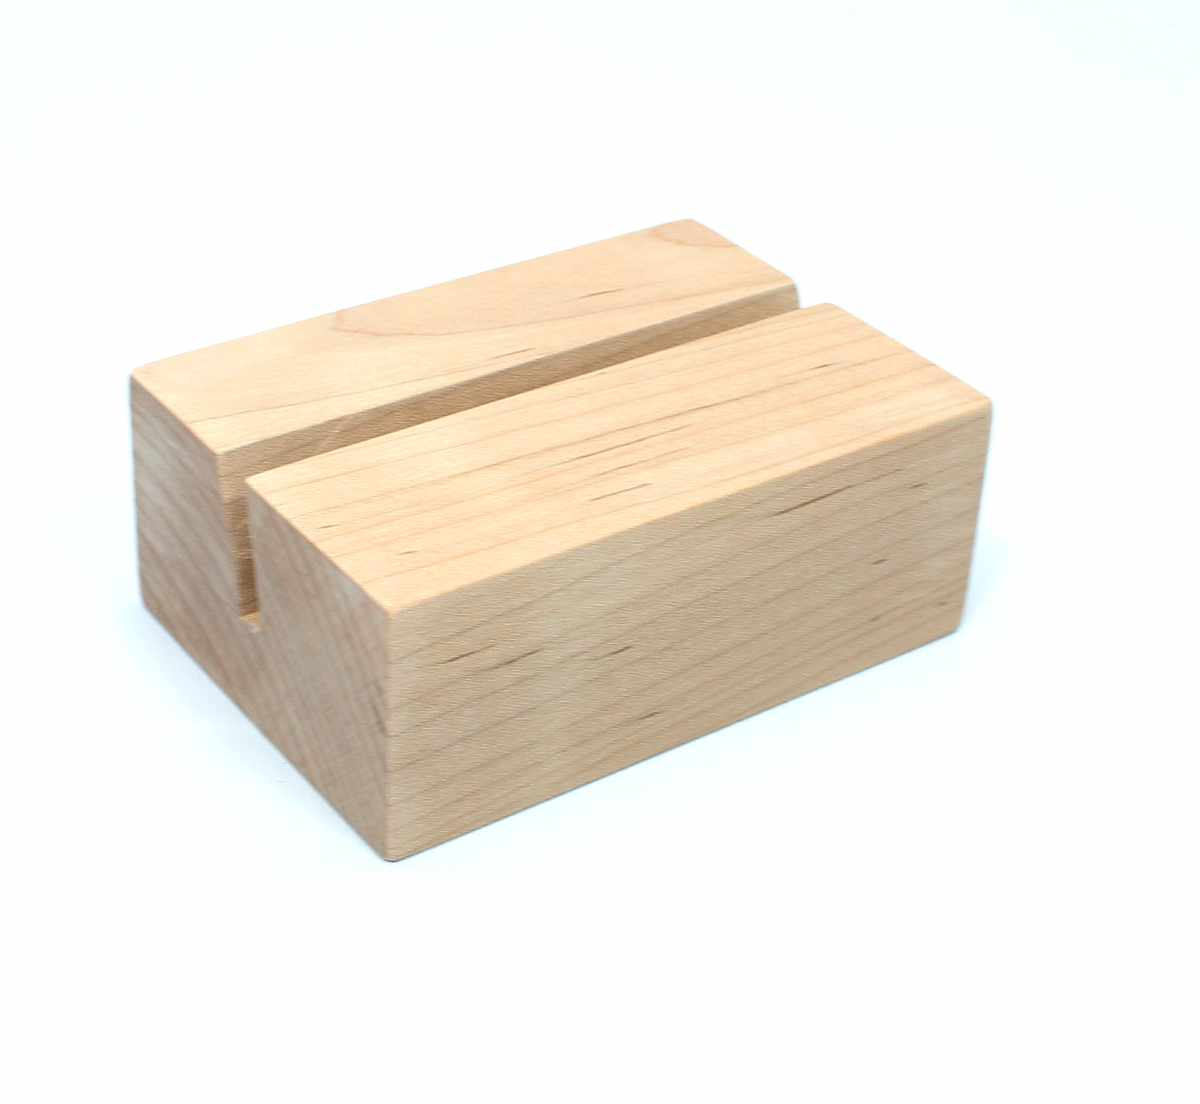 Raw Wood Desk Calendar Stand